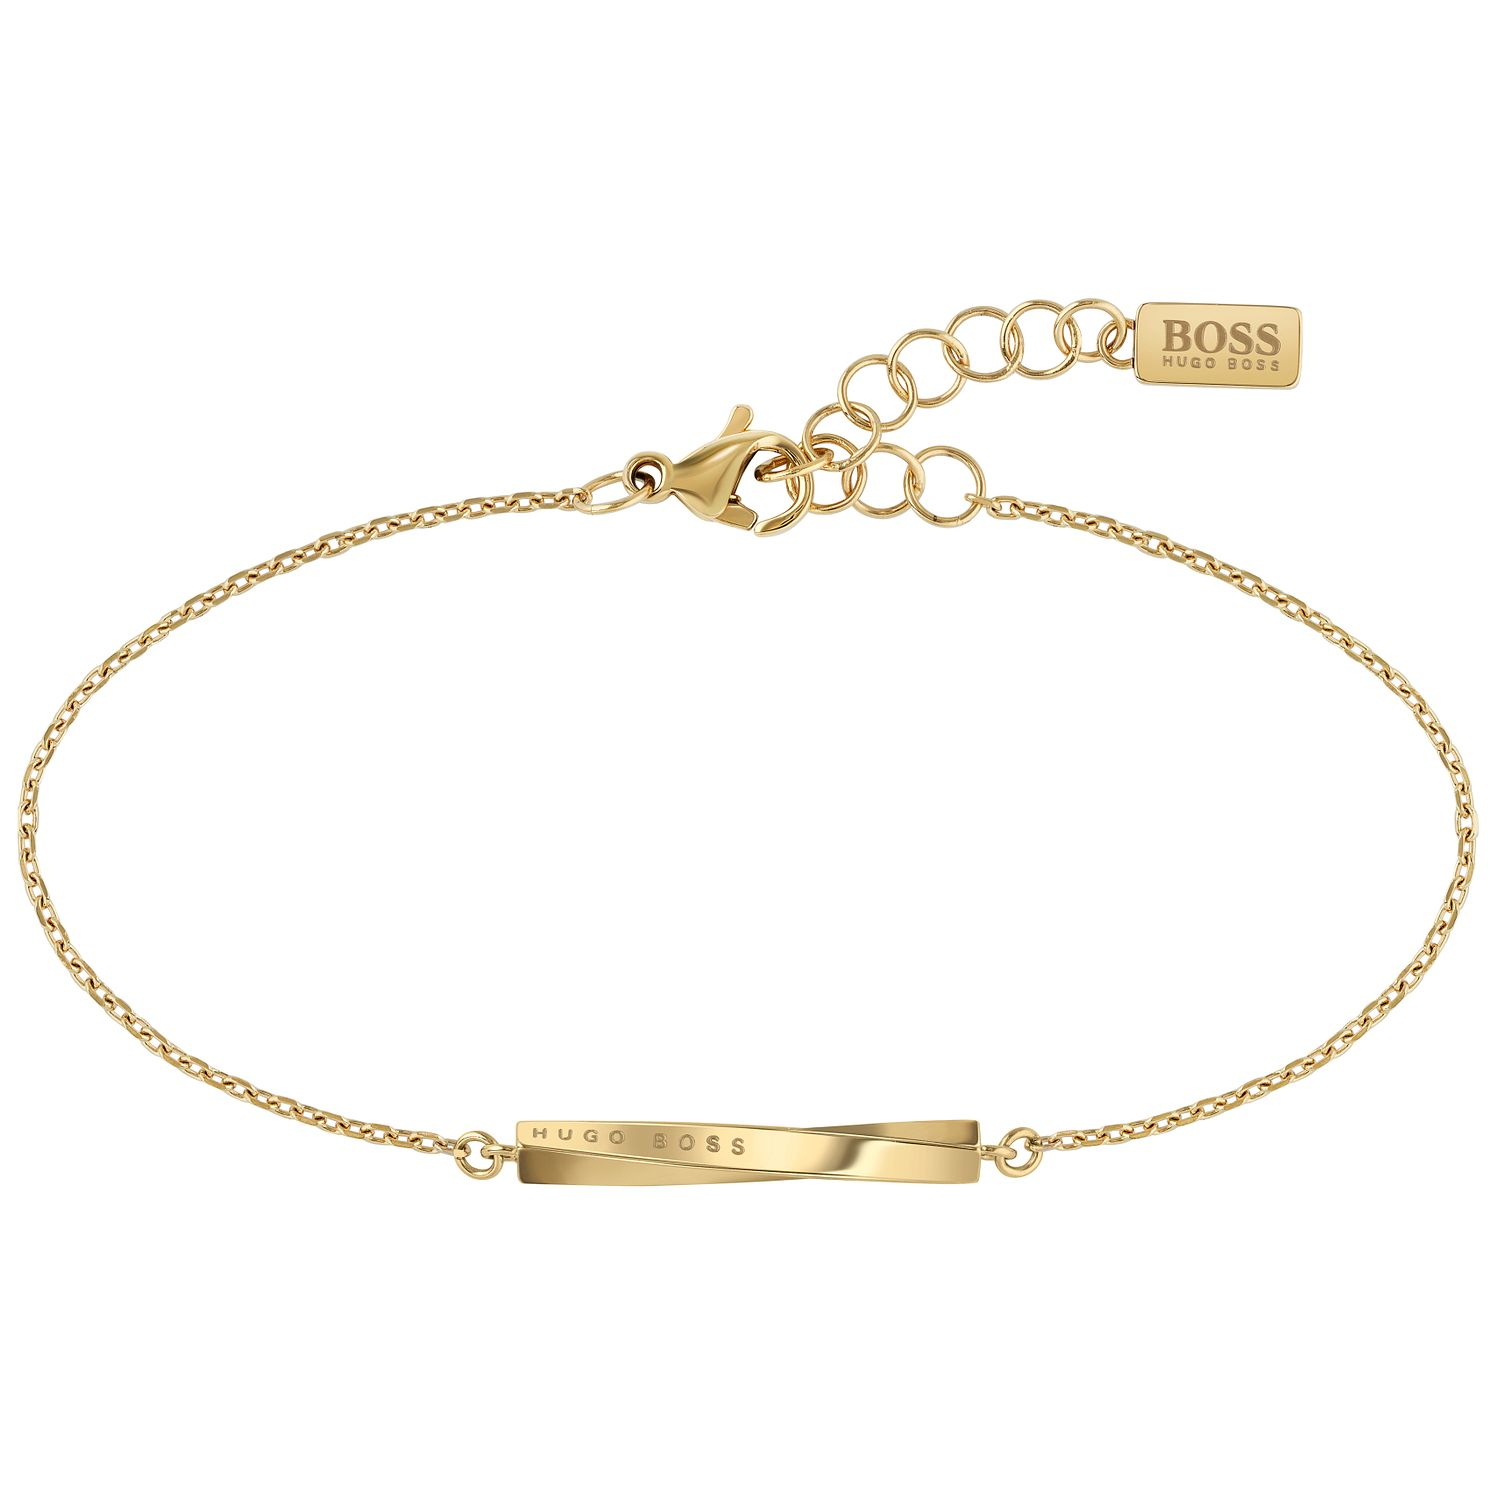 BOSS Signature Ladies'  Yellow Gold Tone Bracelet - Product number 5008158